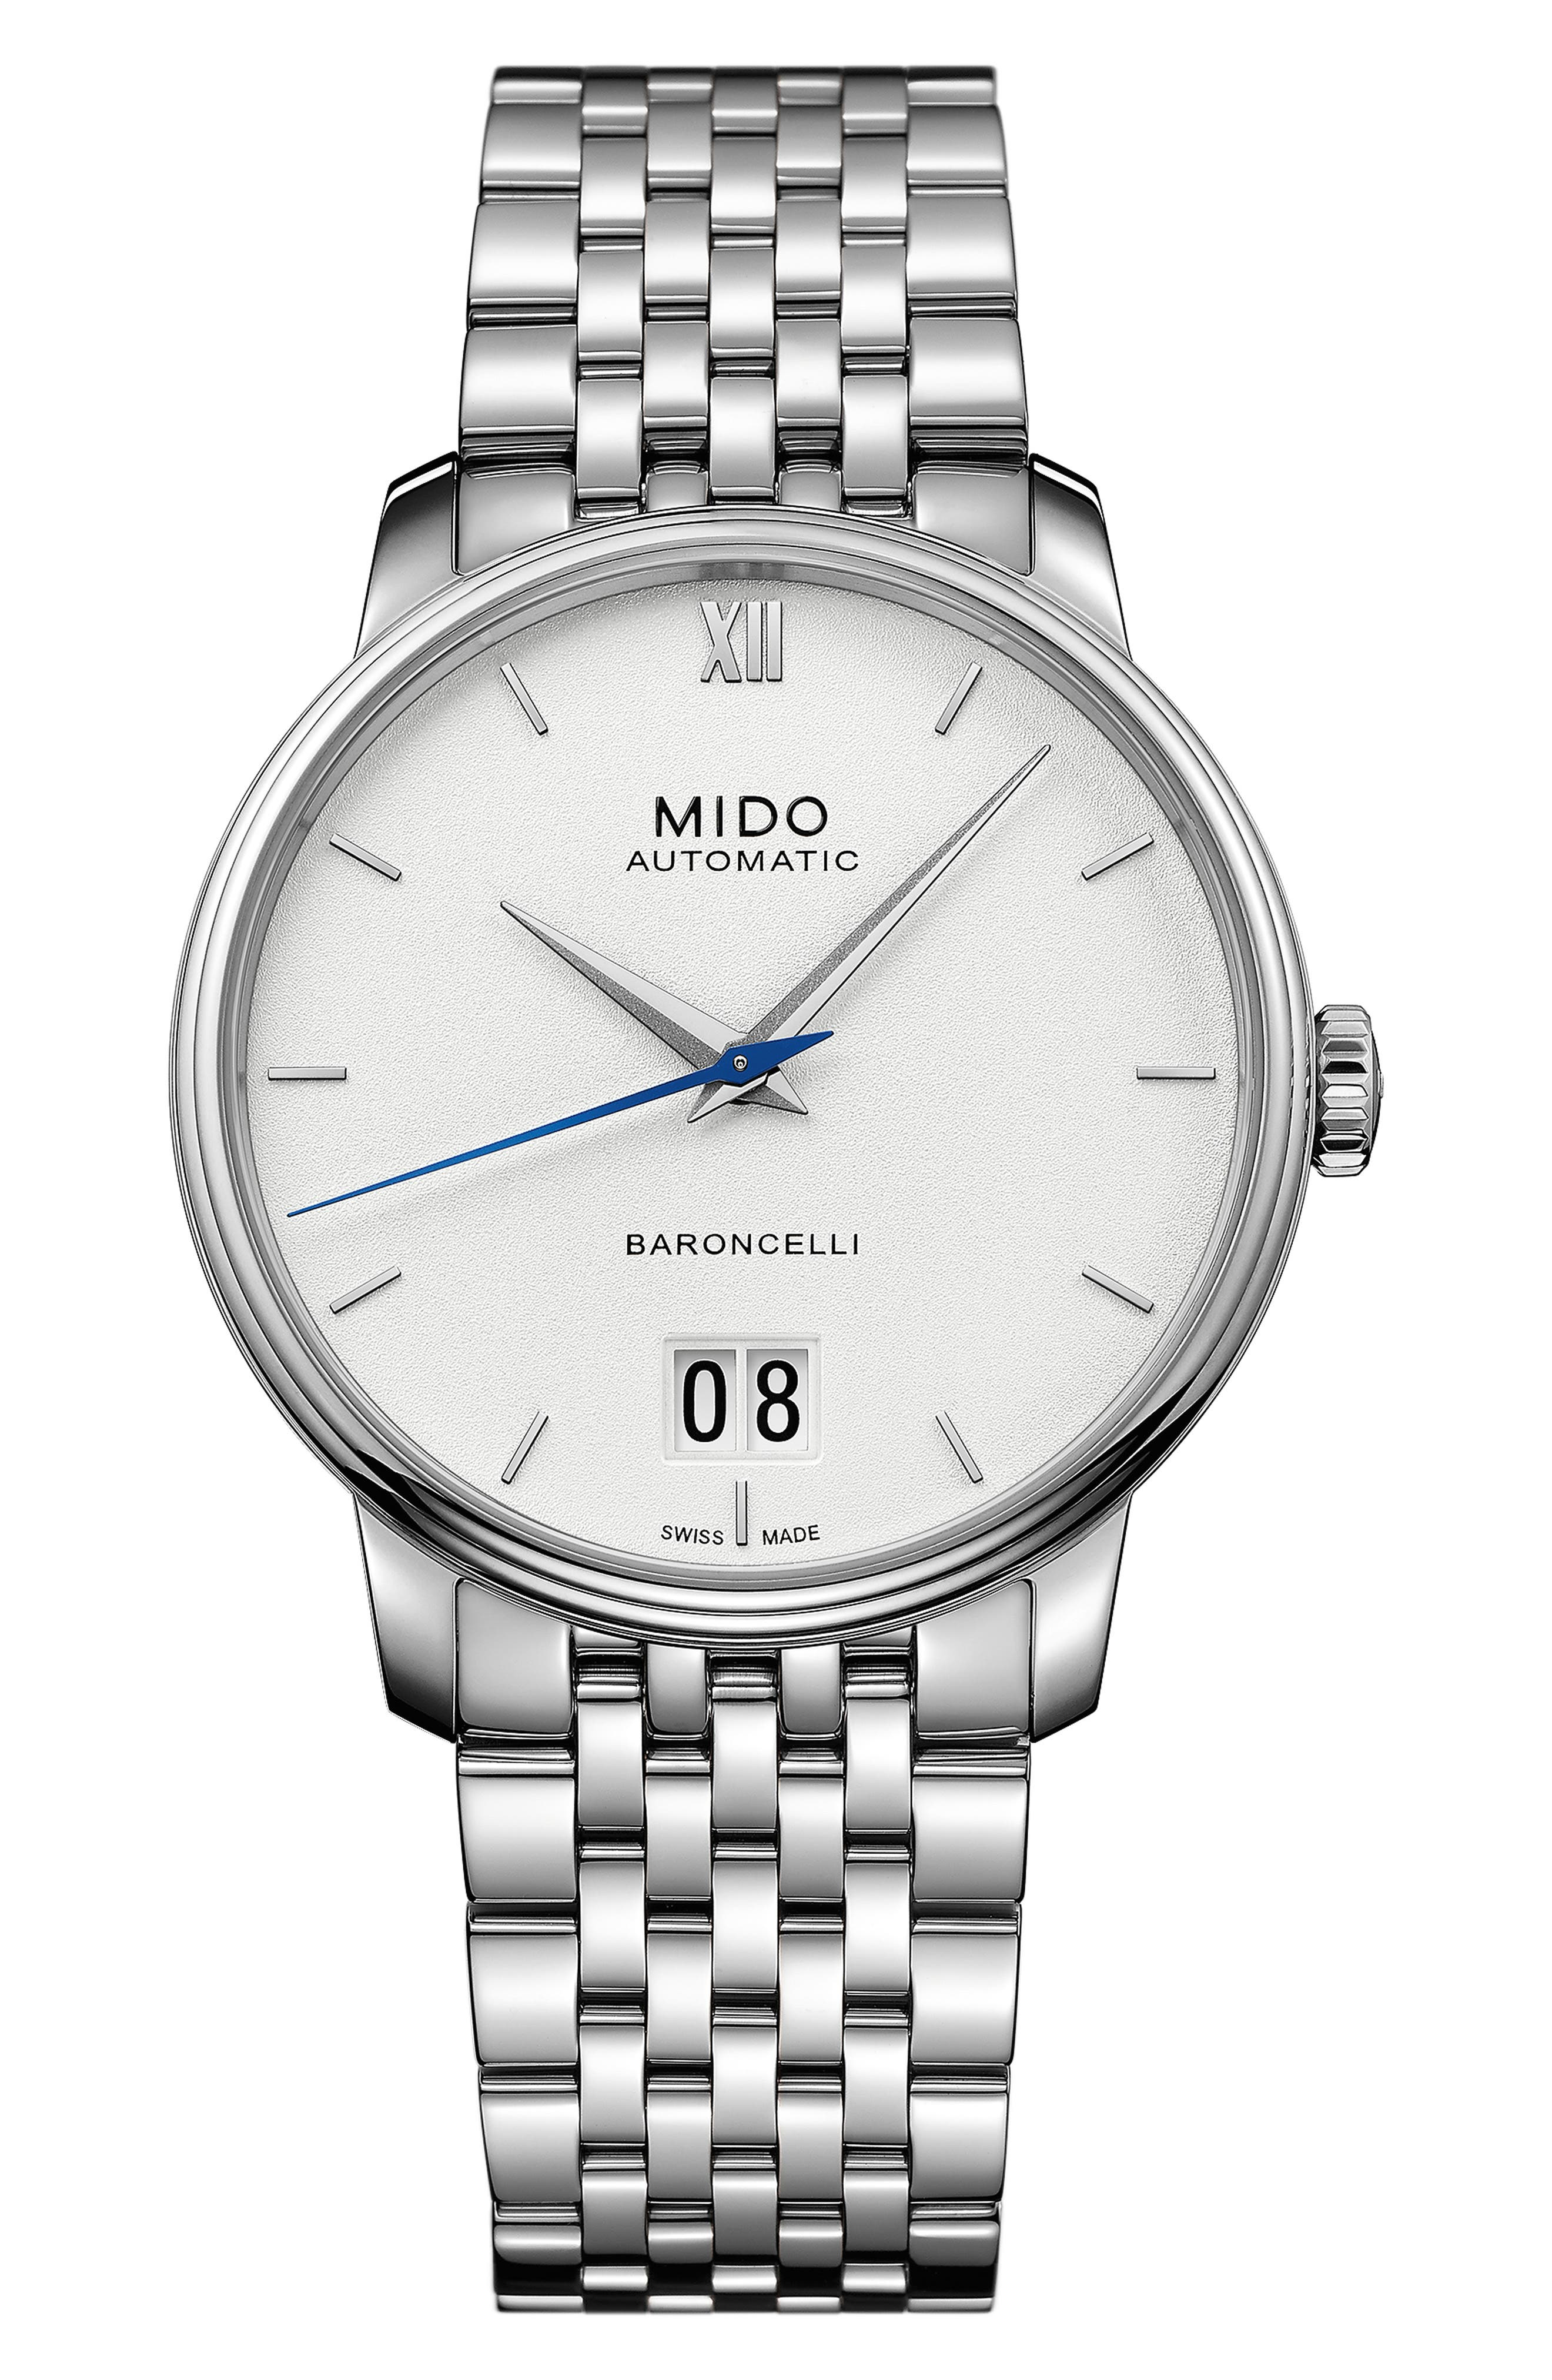 MIDO Baroncelli Iii Automatic Bracelet Watch in Silver/ White/ Silver